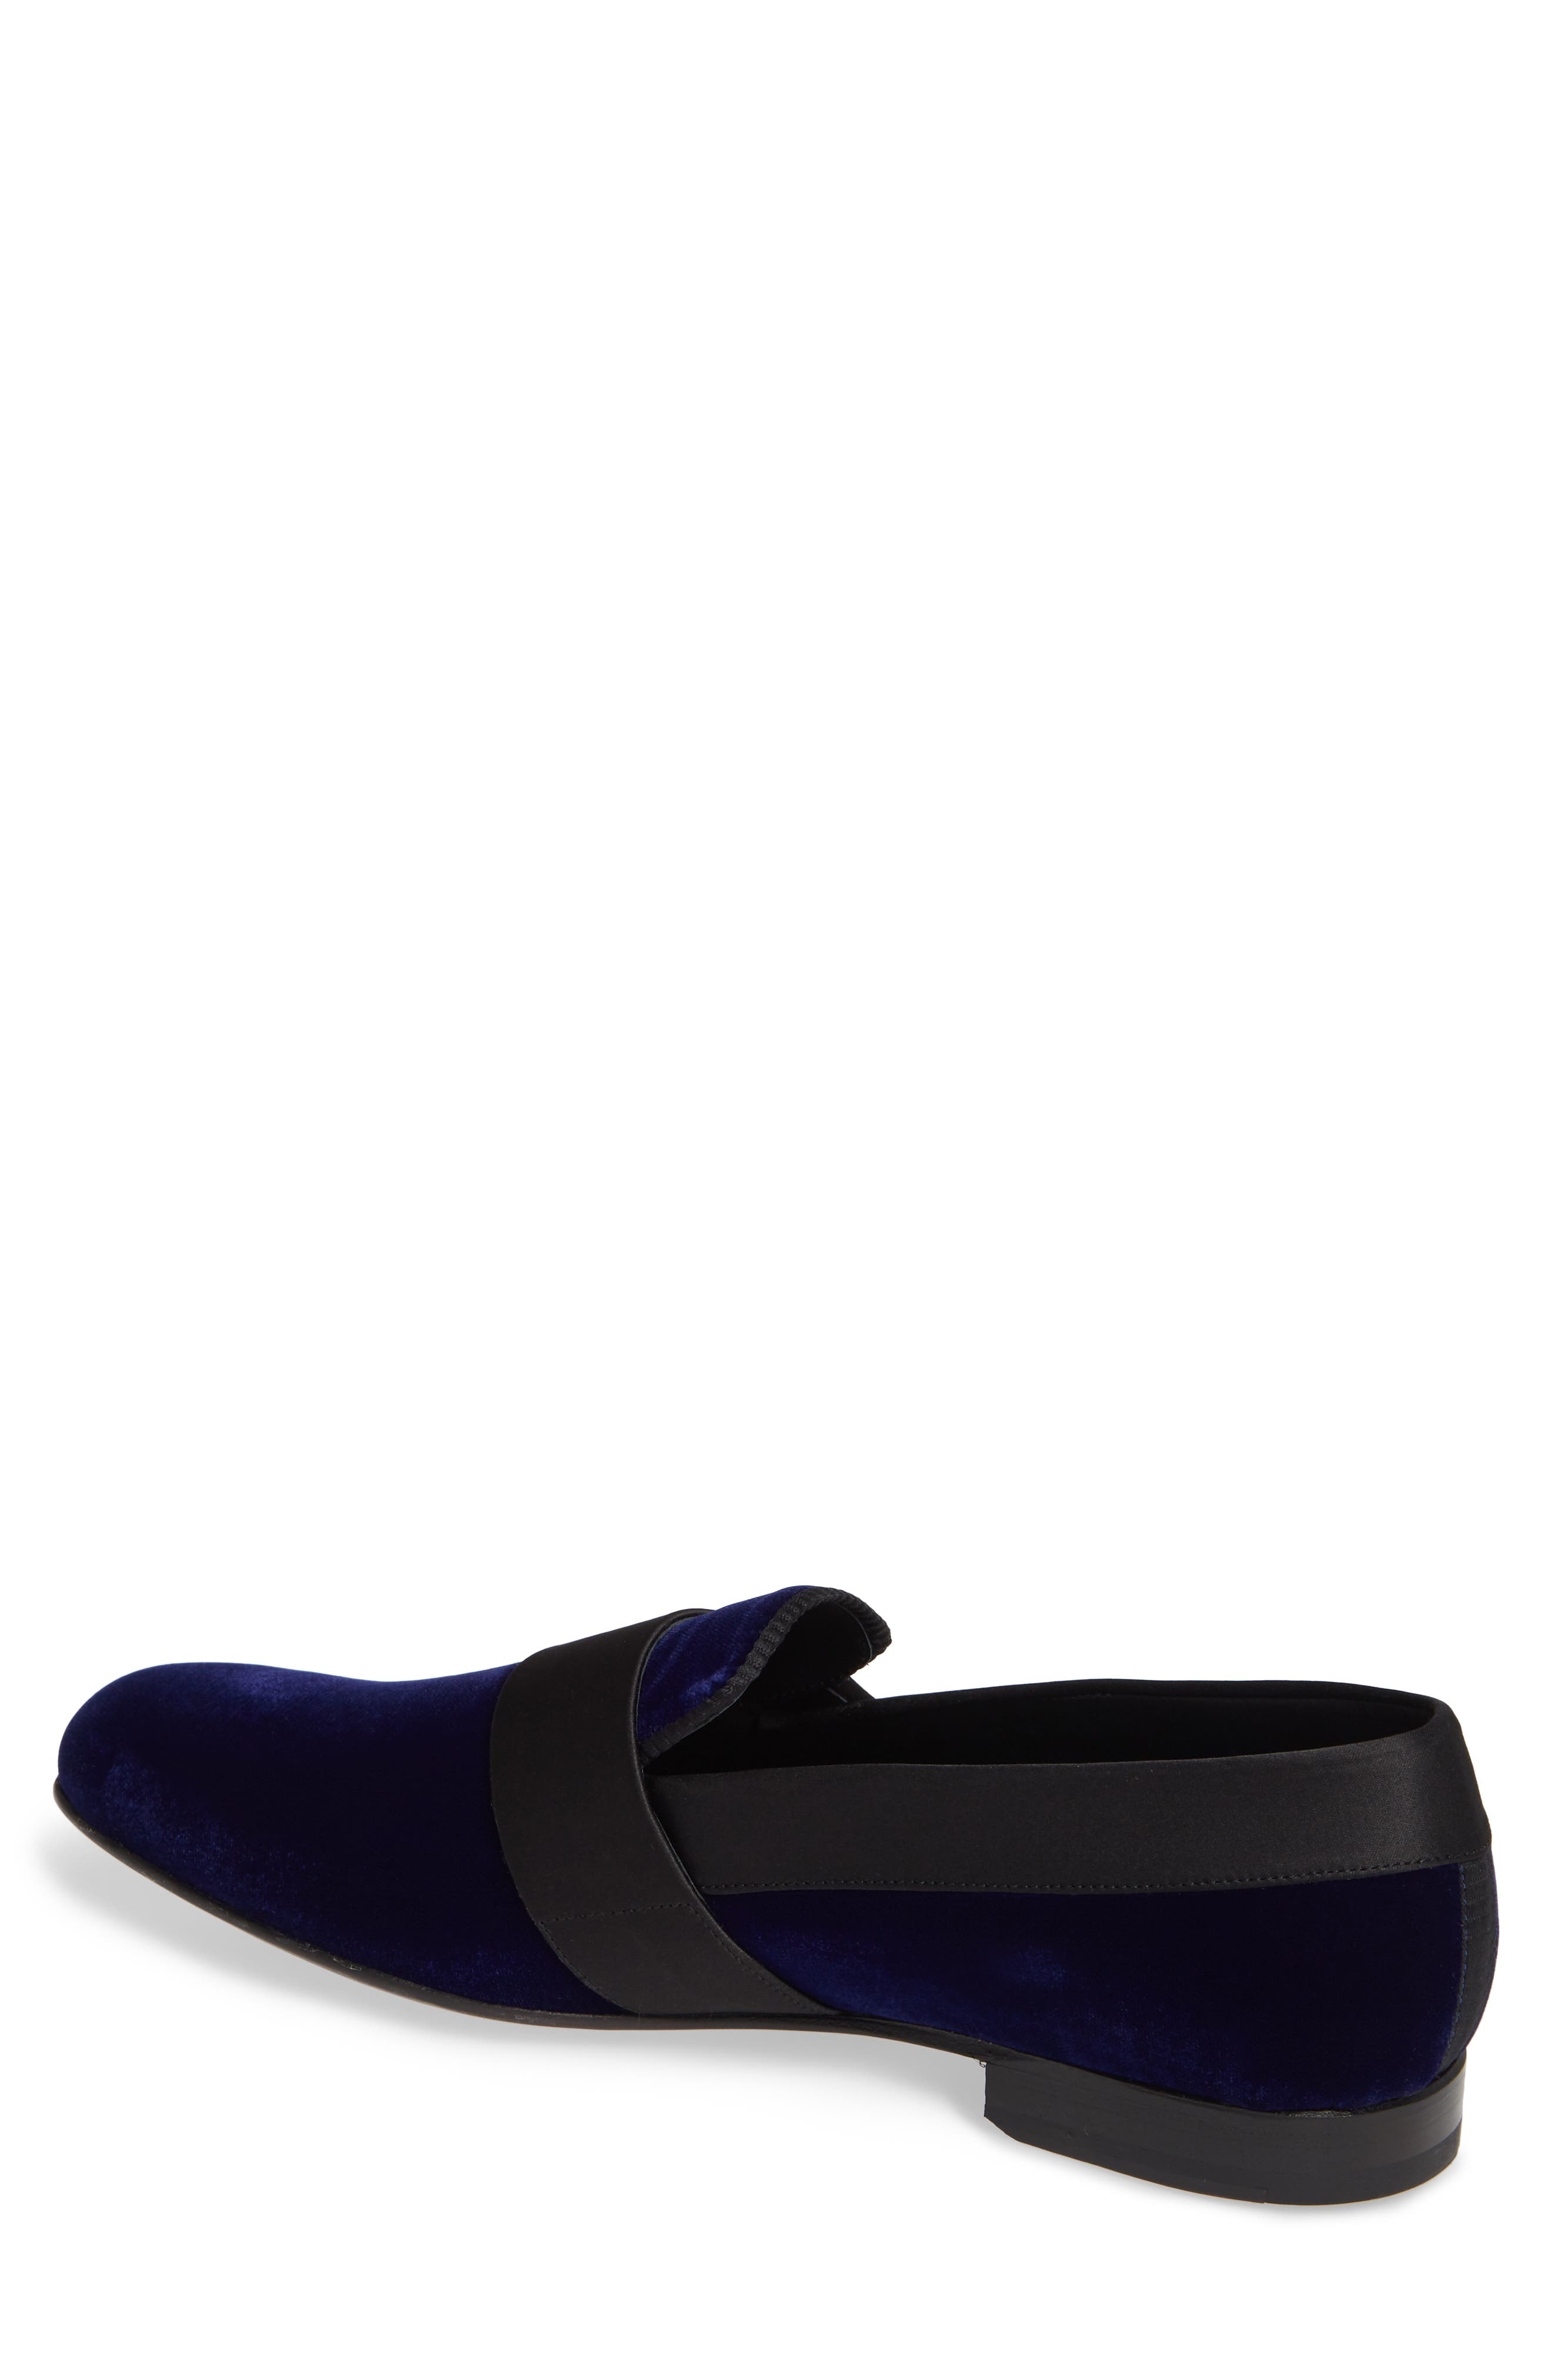 Palance Velvet Slip-On,                             Alternate thumbnail 2, color,                             BLUE VELVET